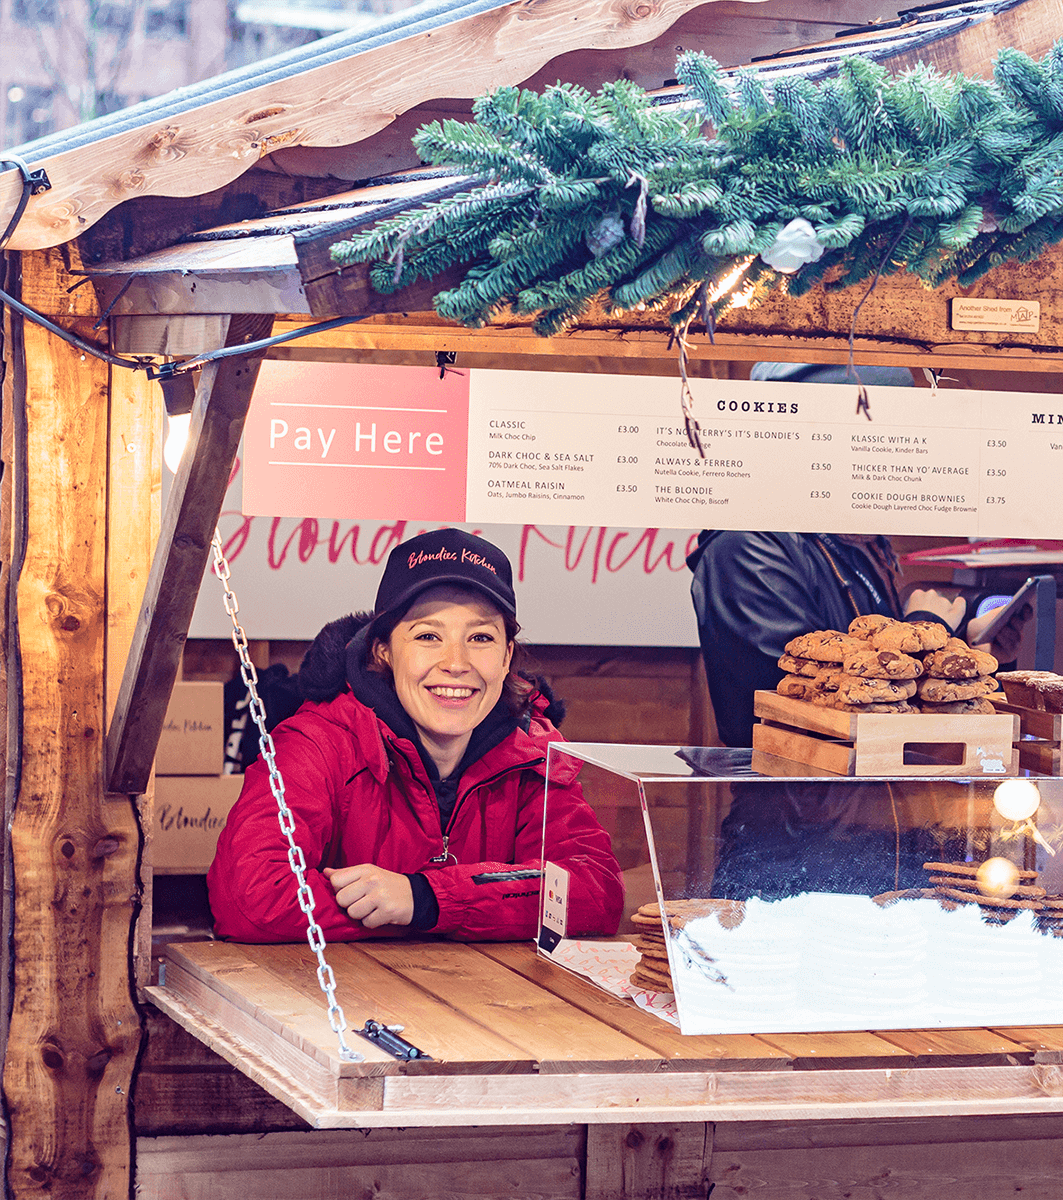 Brunette female brand ambassador wearing a baseball cap working at a Blondies Kitchen pop-up kiosk at London market. There is a selection of cookies on the counter beside her.